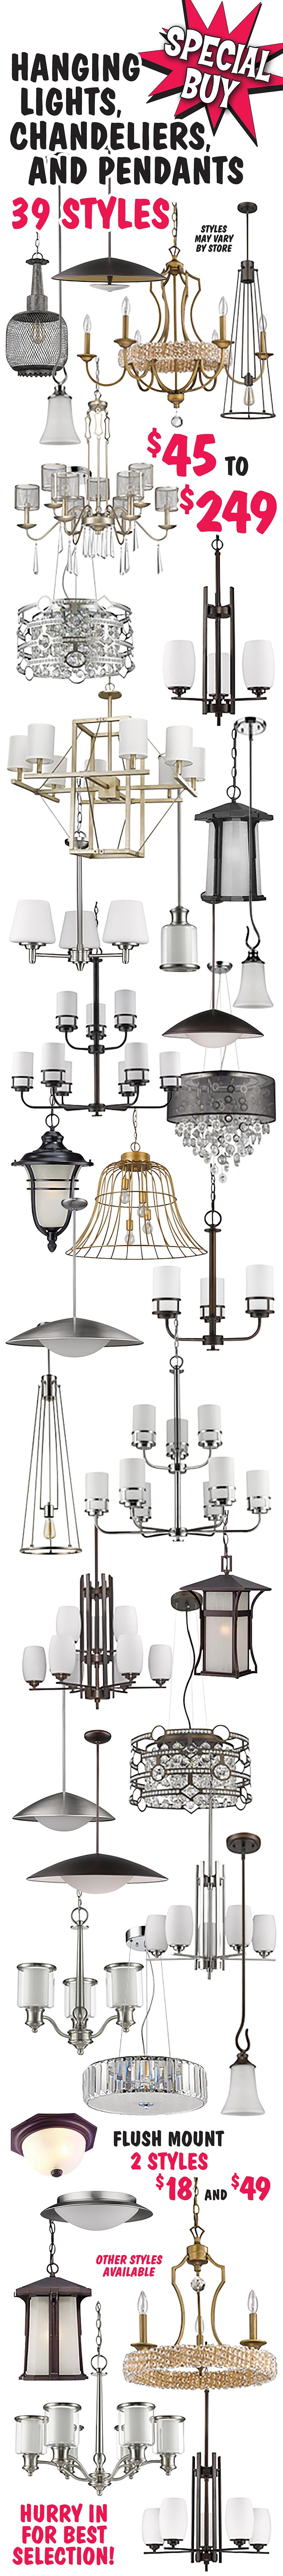 Special Buy Hanging Lights, Chandeliers, Pendant, and Flush Mount Lights - 41 Styles - $18 to $249 - Hurry in for Best Selection